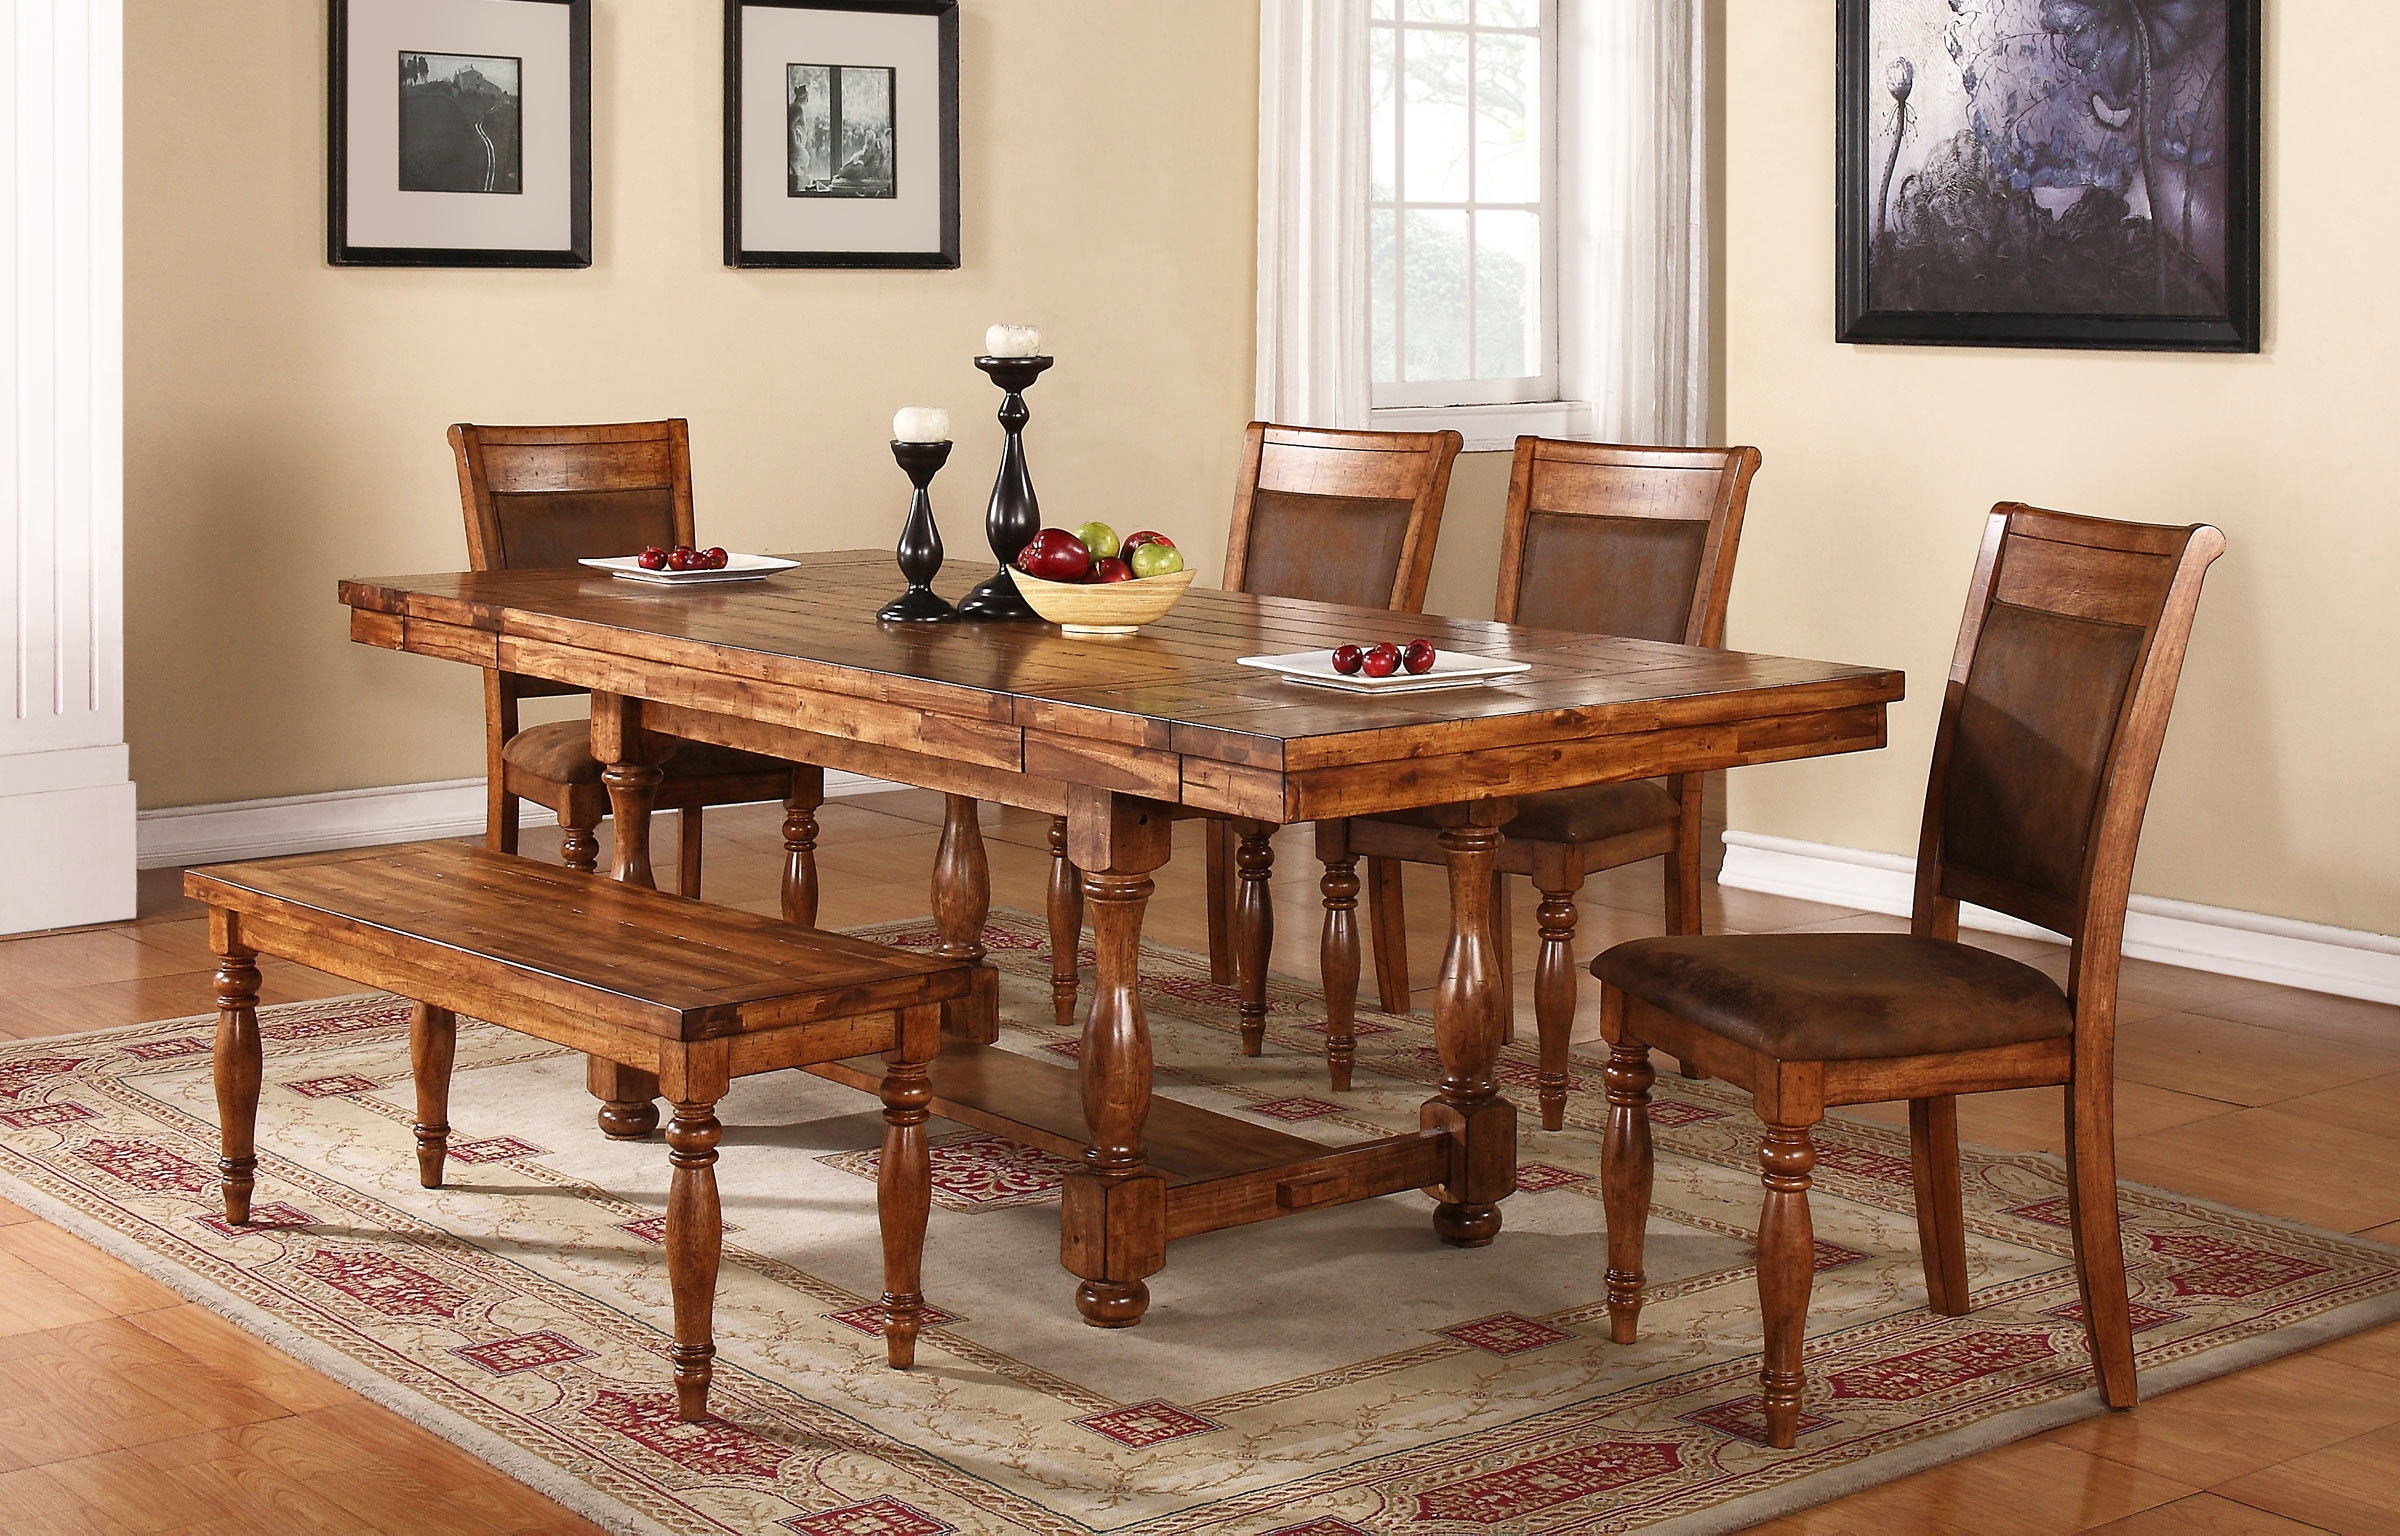 Winners Only 92 Inch Trestle Table With 2-12 Inch Leaves and 6 chairs DG24092 & Winners Only 92 Inch Trestle Table With 2-12 Inch Leaves and 6 ...